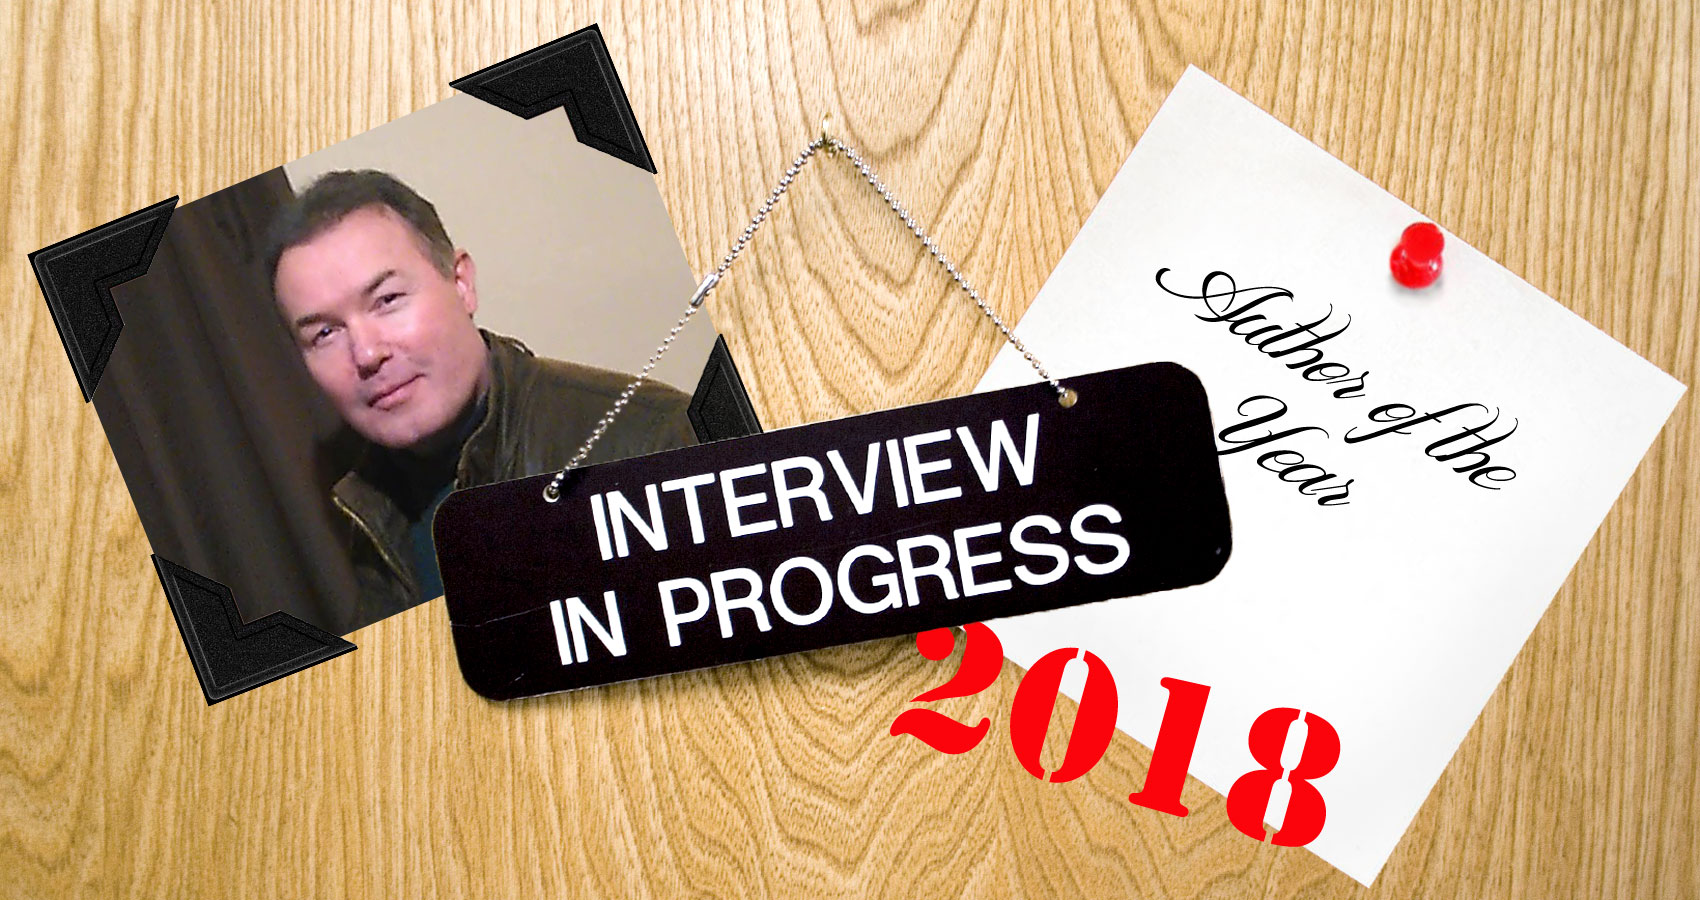 Author Of The Year 2018 Interview with Aaron Marchant at Spillwords.com